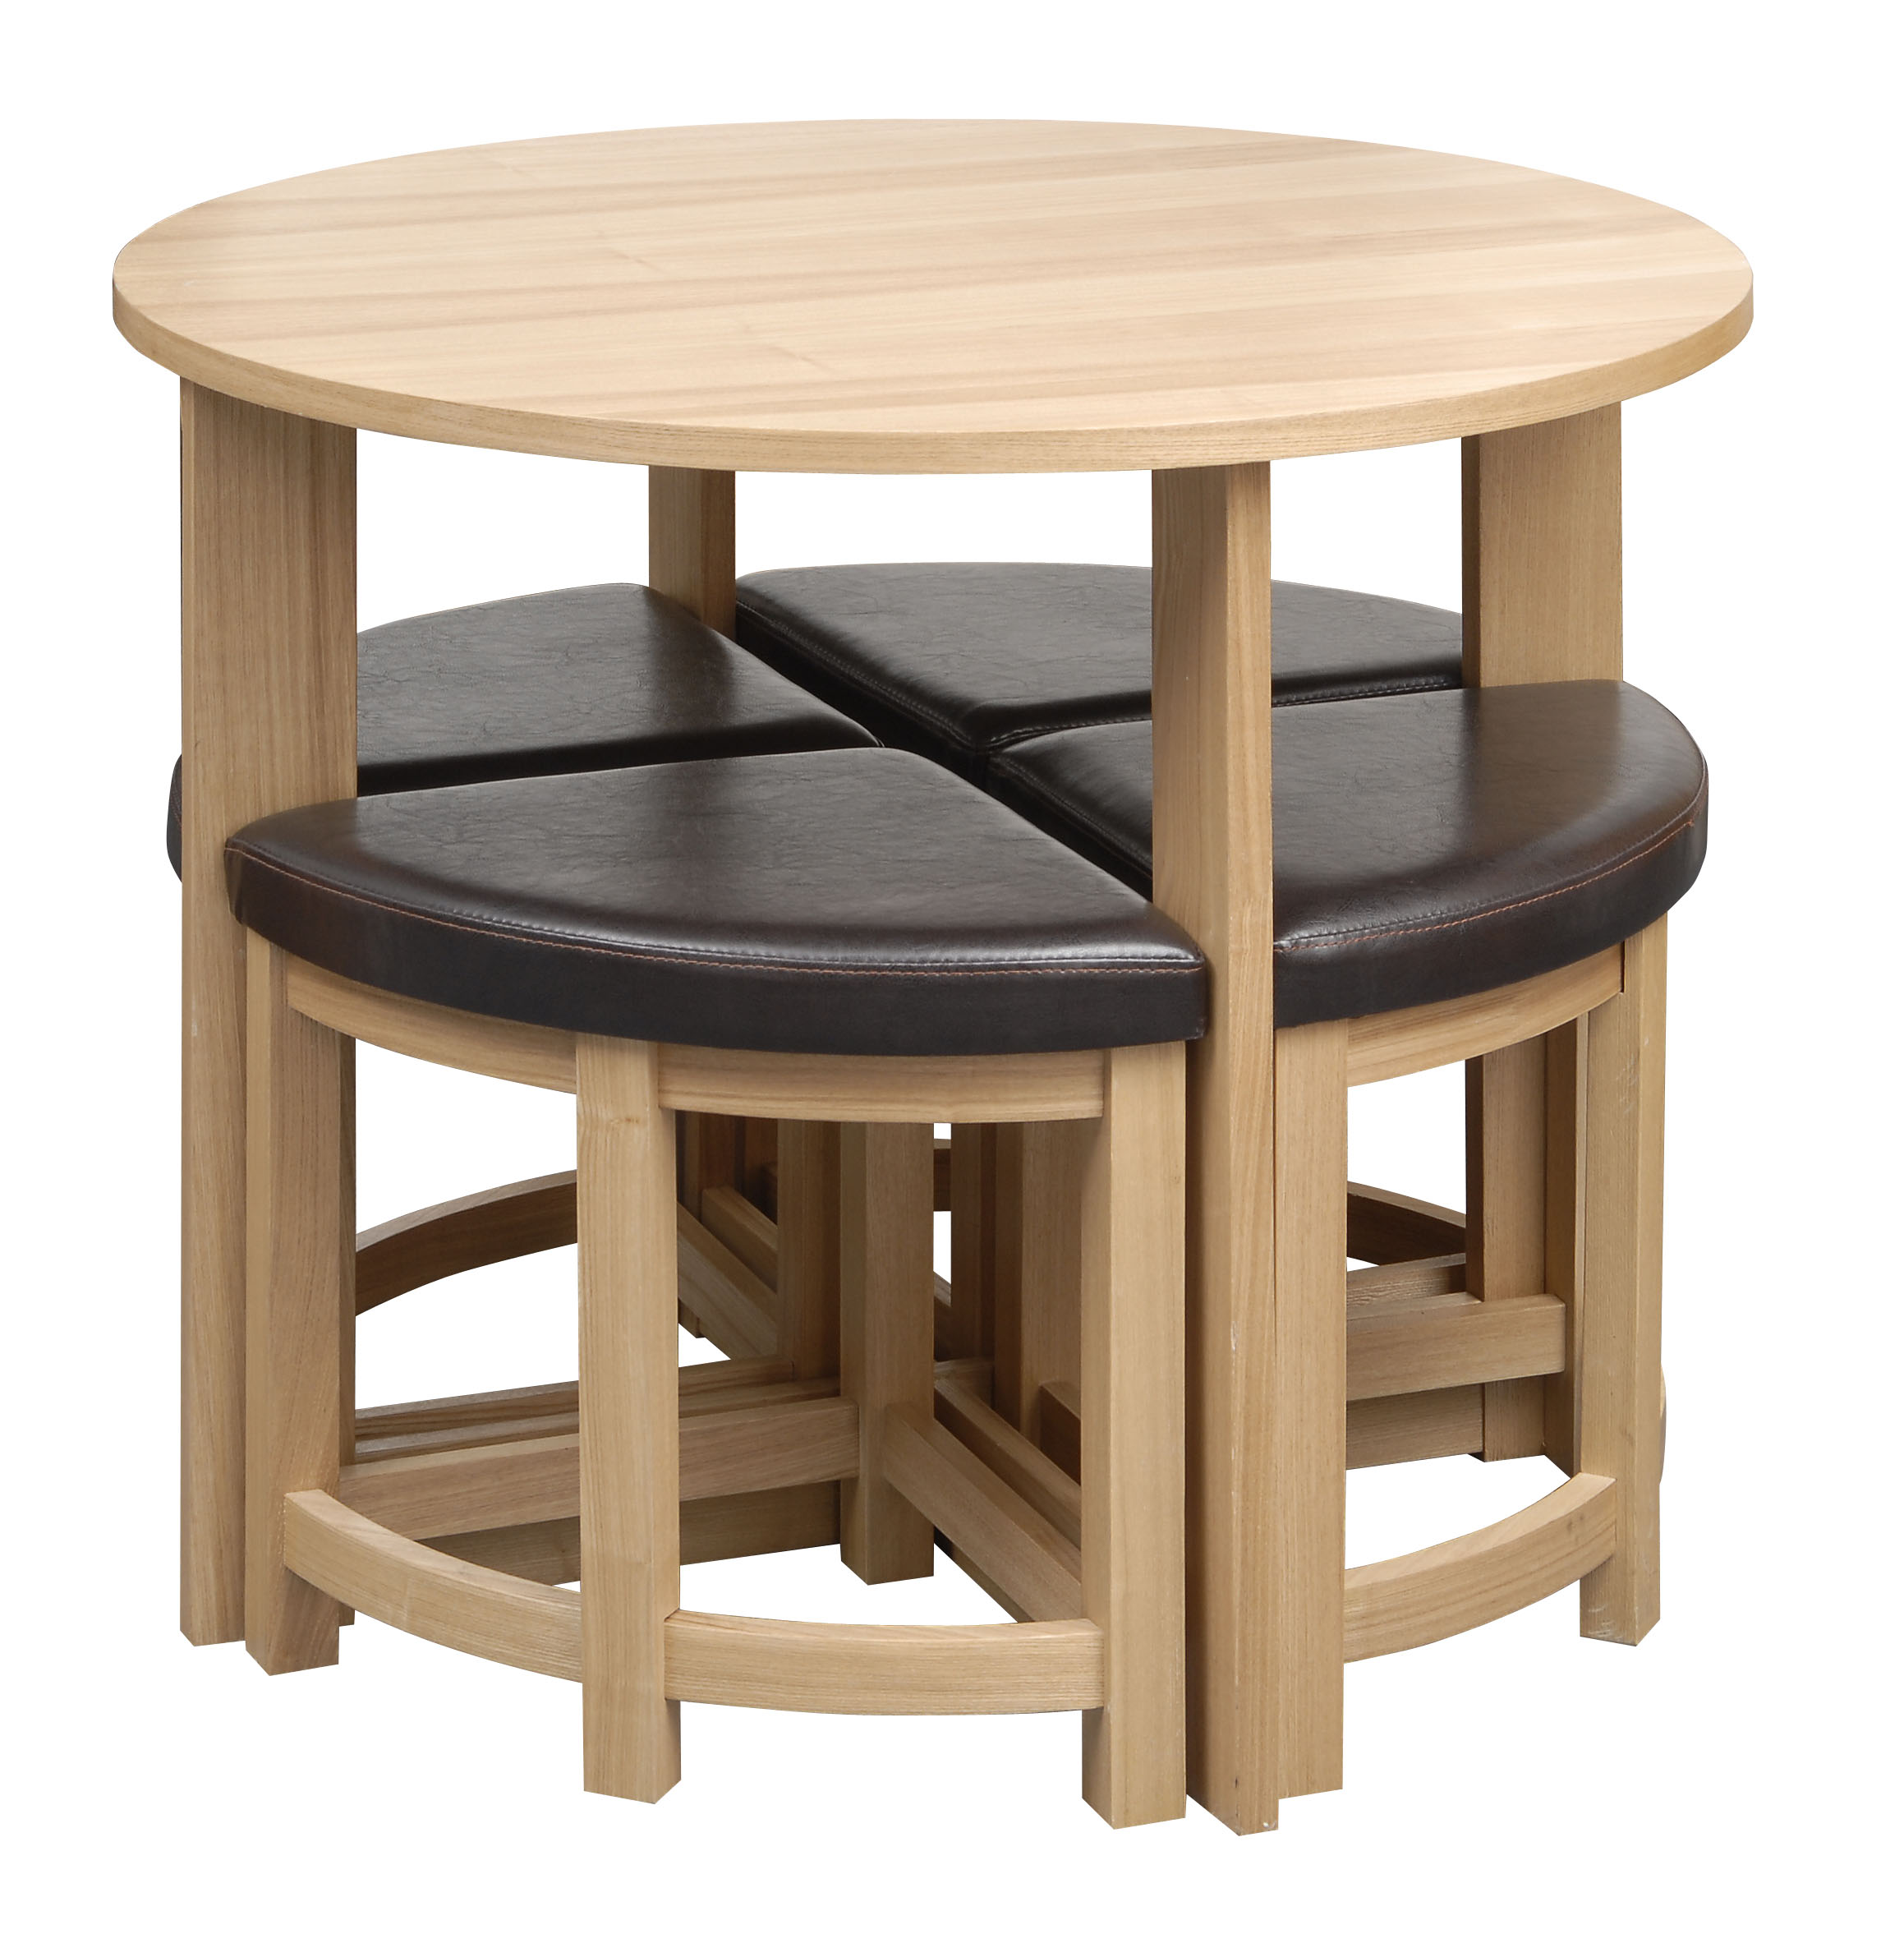 Dining table set round oak effect 4 seater brown padded for Stowaway dining table